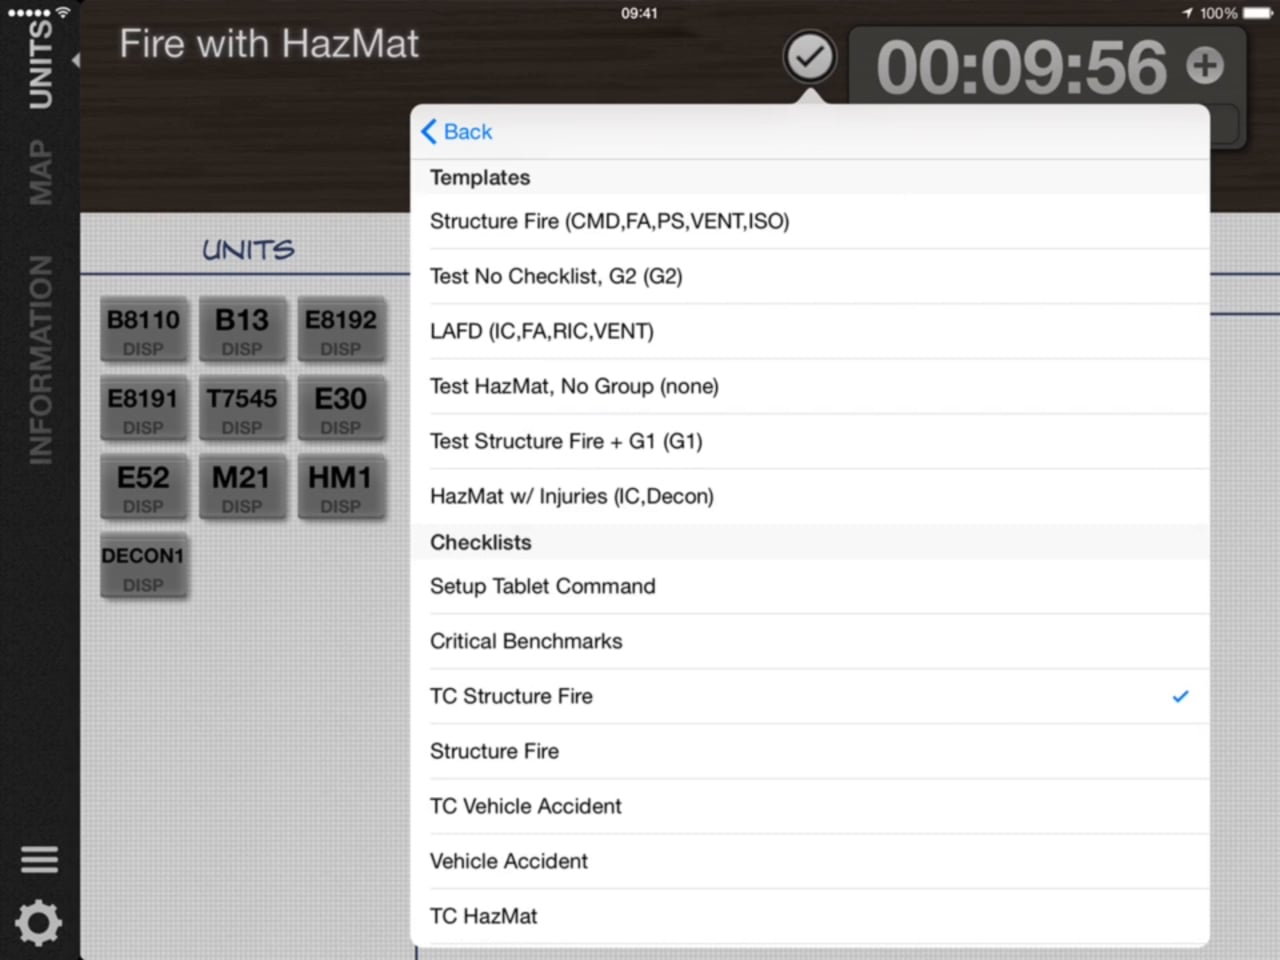 How to Add Checklists During an Incident